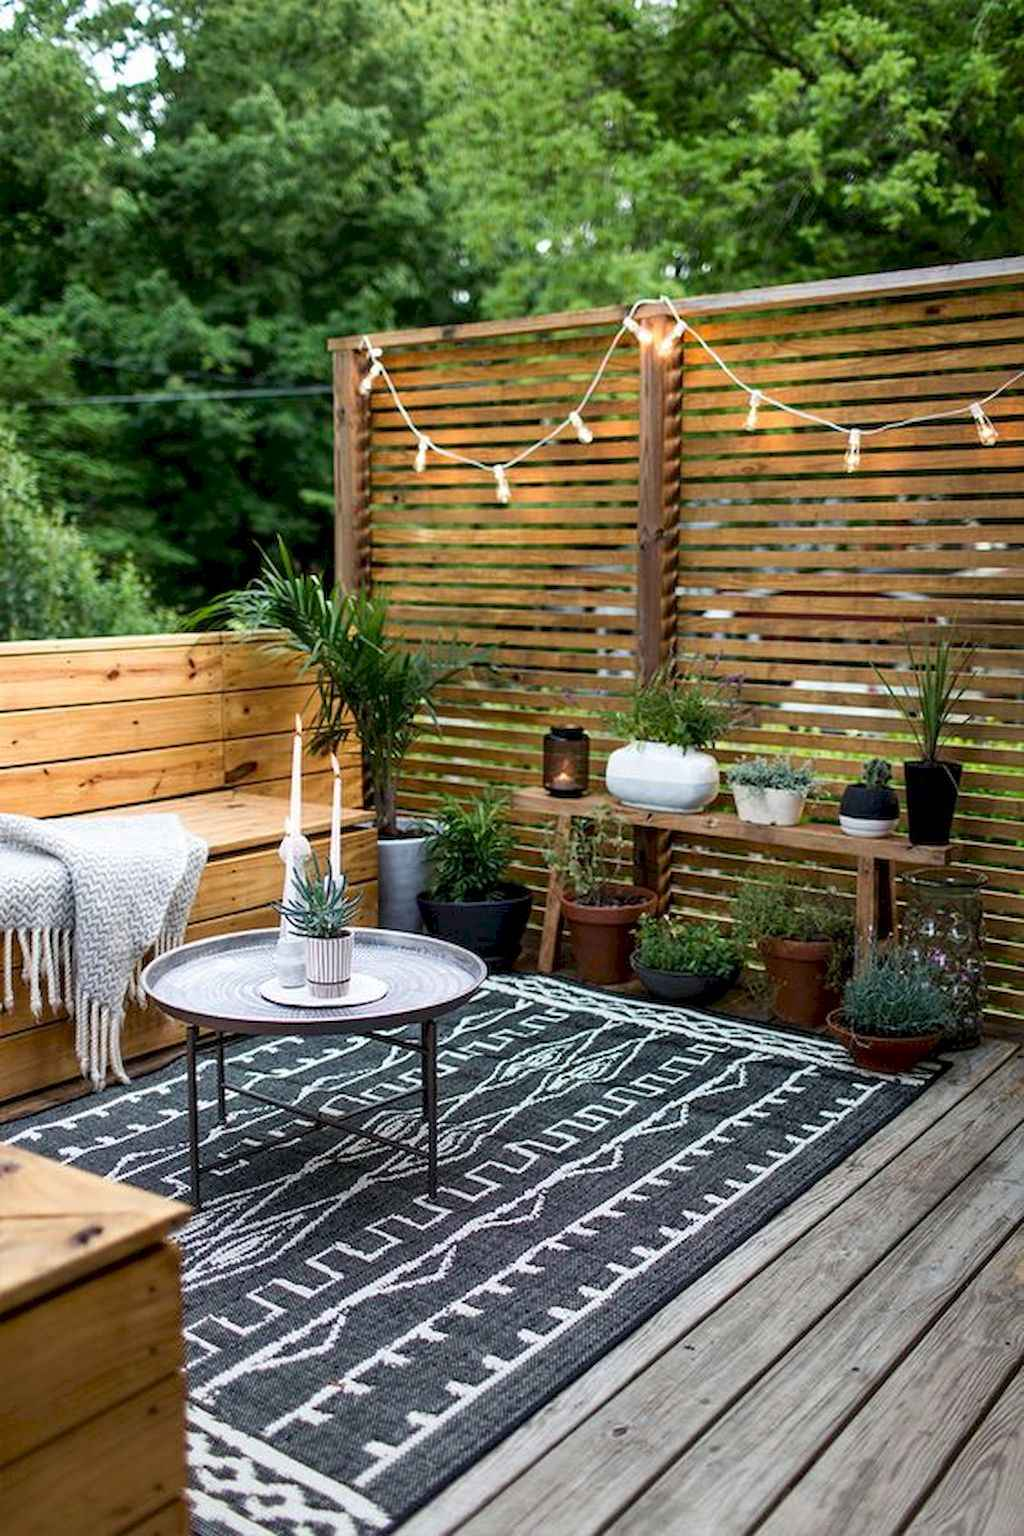 Cleverly diy porch patio decorating ideas (49)